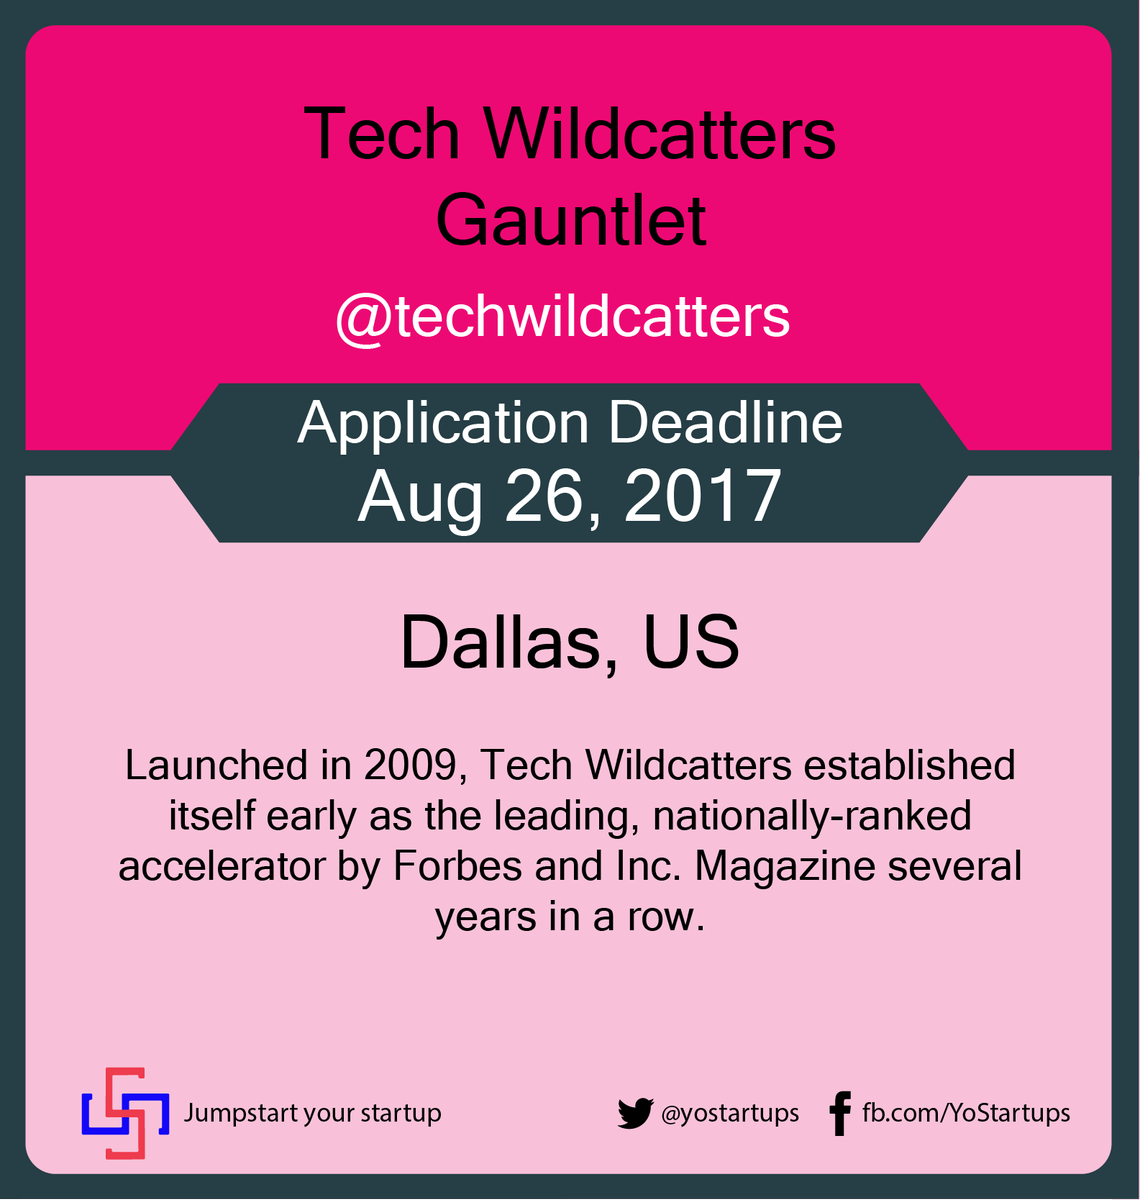 Checkout @techwildcatters #startup #accelerator fueled by data, milestones and ambition #YoStartups  https:// goo.gl/p8oTqT  &nbsp;  <br>http://pic.twitter.com/XMu1iKzoA7